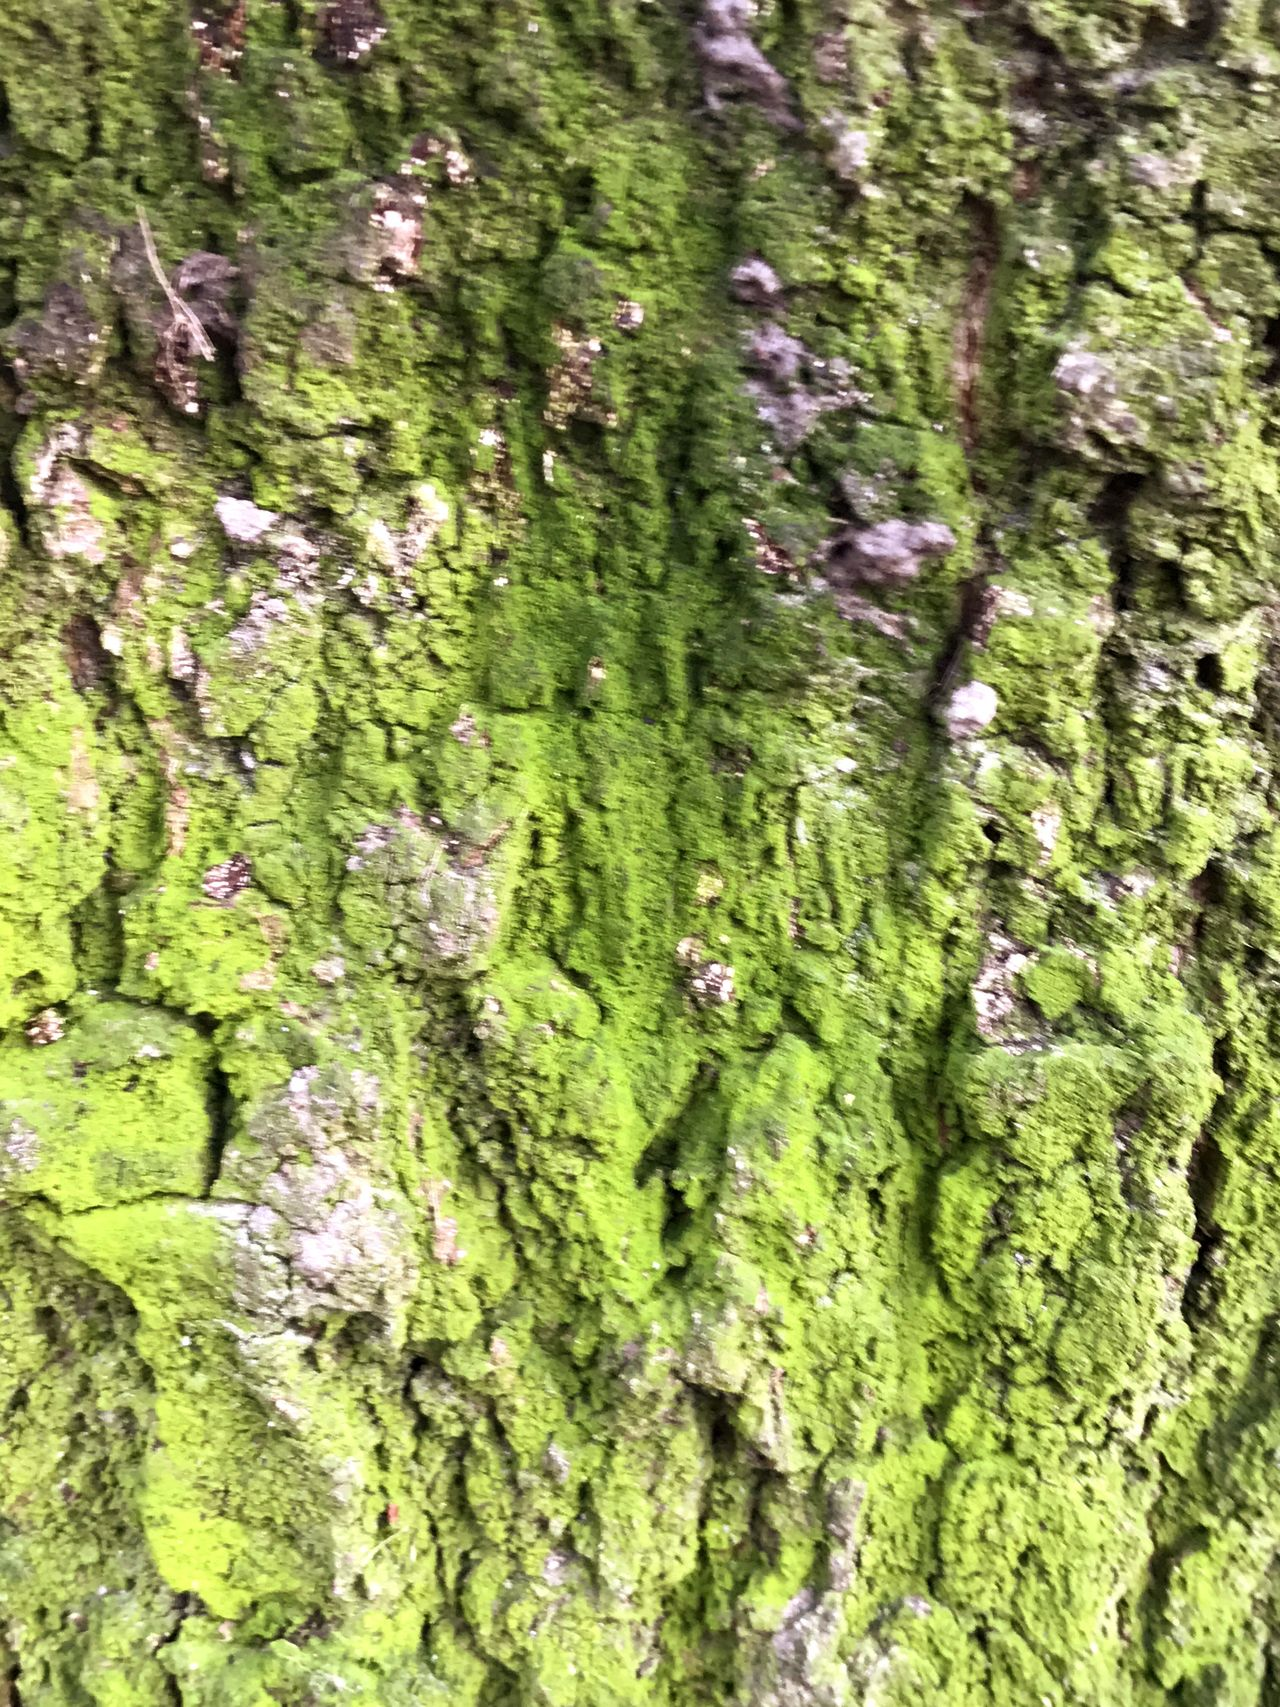 Green Color Full Frame Nature Outdoors Close-up Nature_collection Nature Photography Naturelovers Moss Mossy Tree Moss & Lichen Moss-covered Moss Covered Tree Natural Pattern Nature Collection